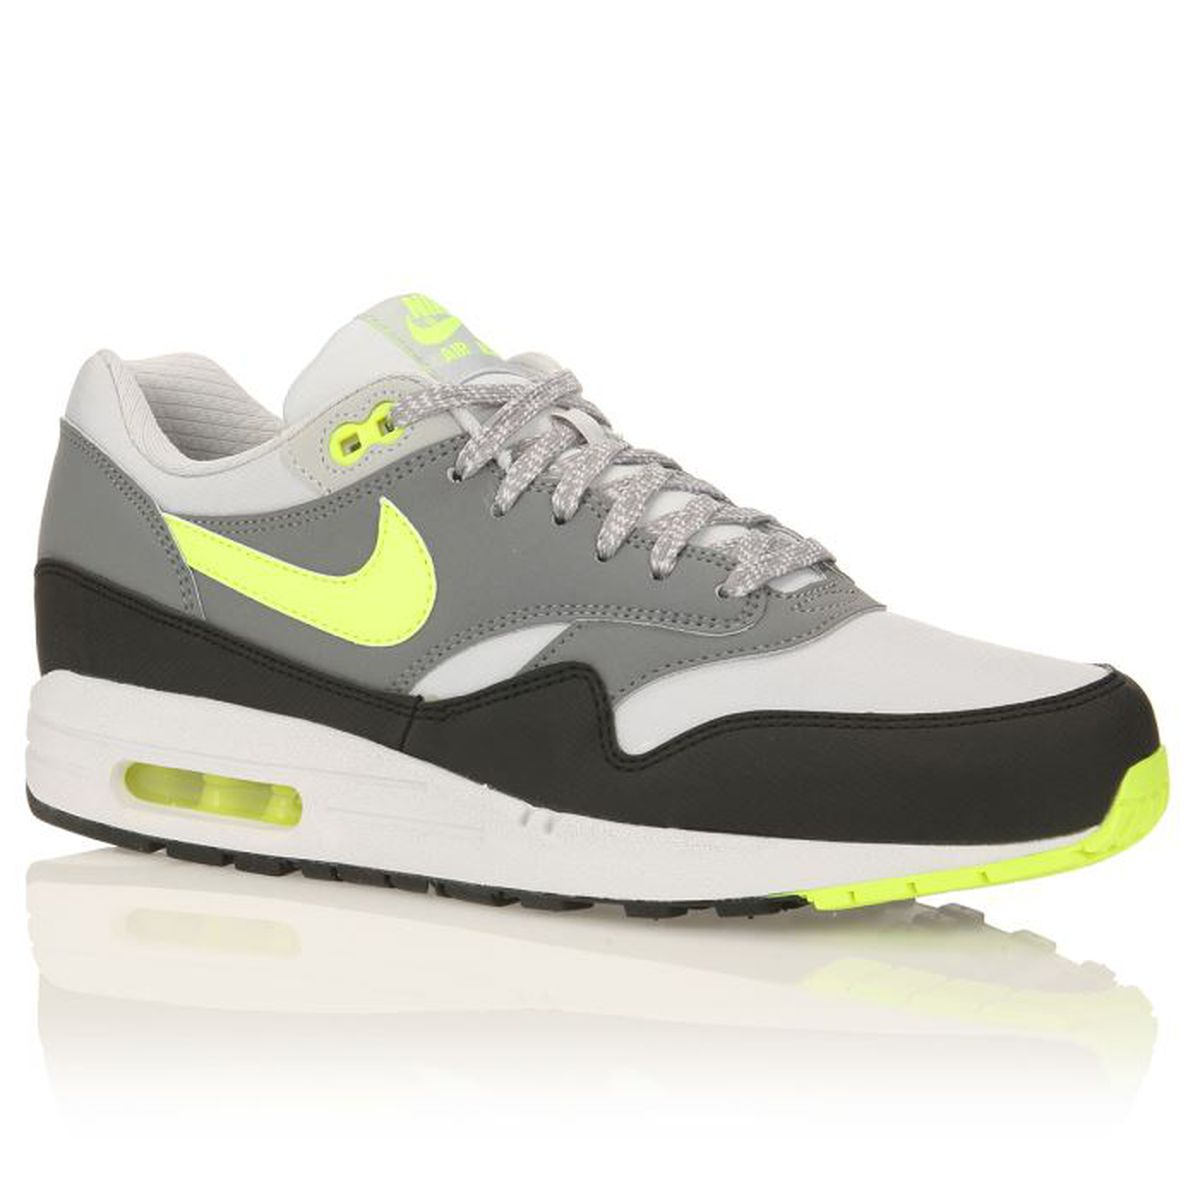 chaussures nike jaune fluo homme